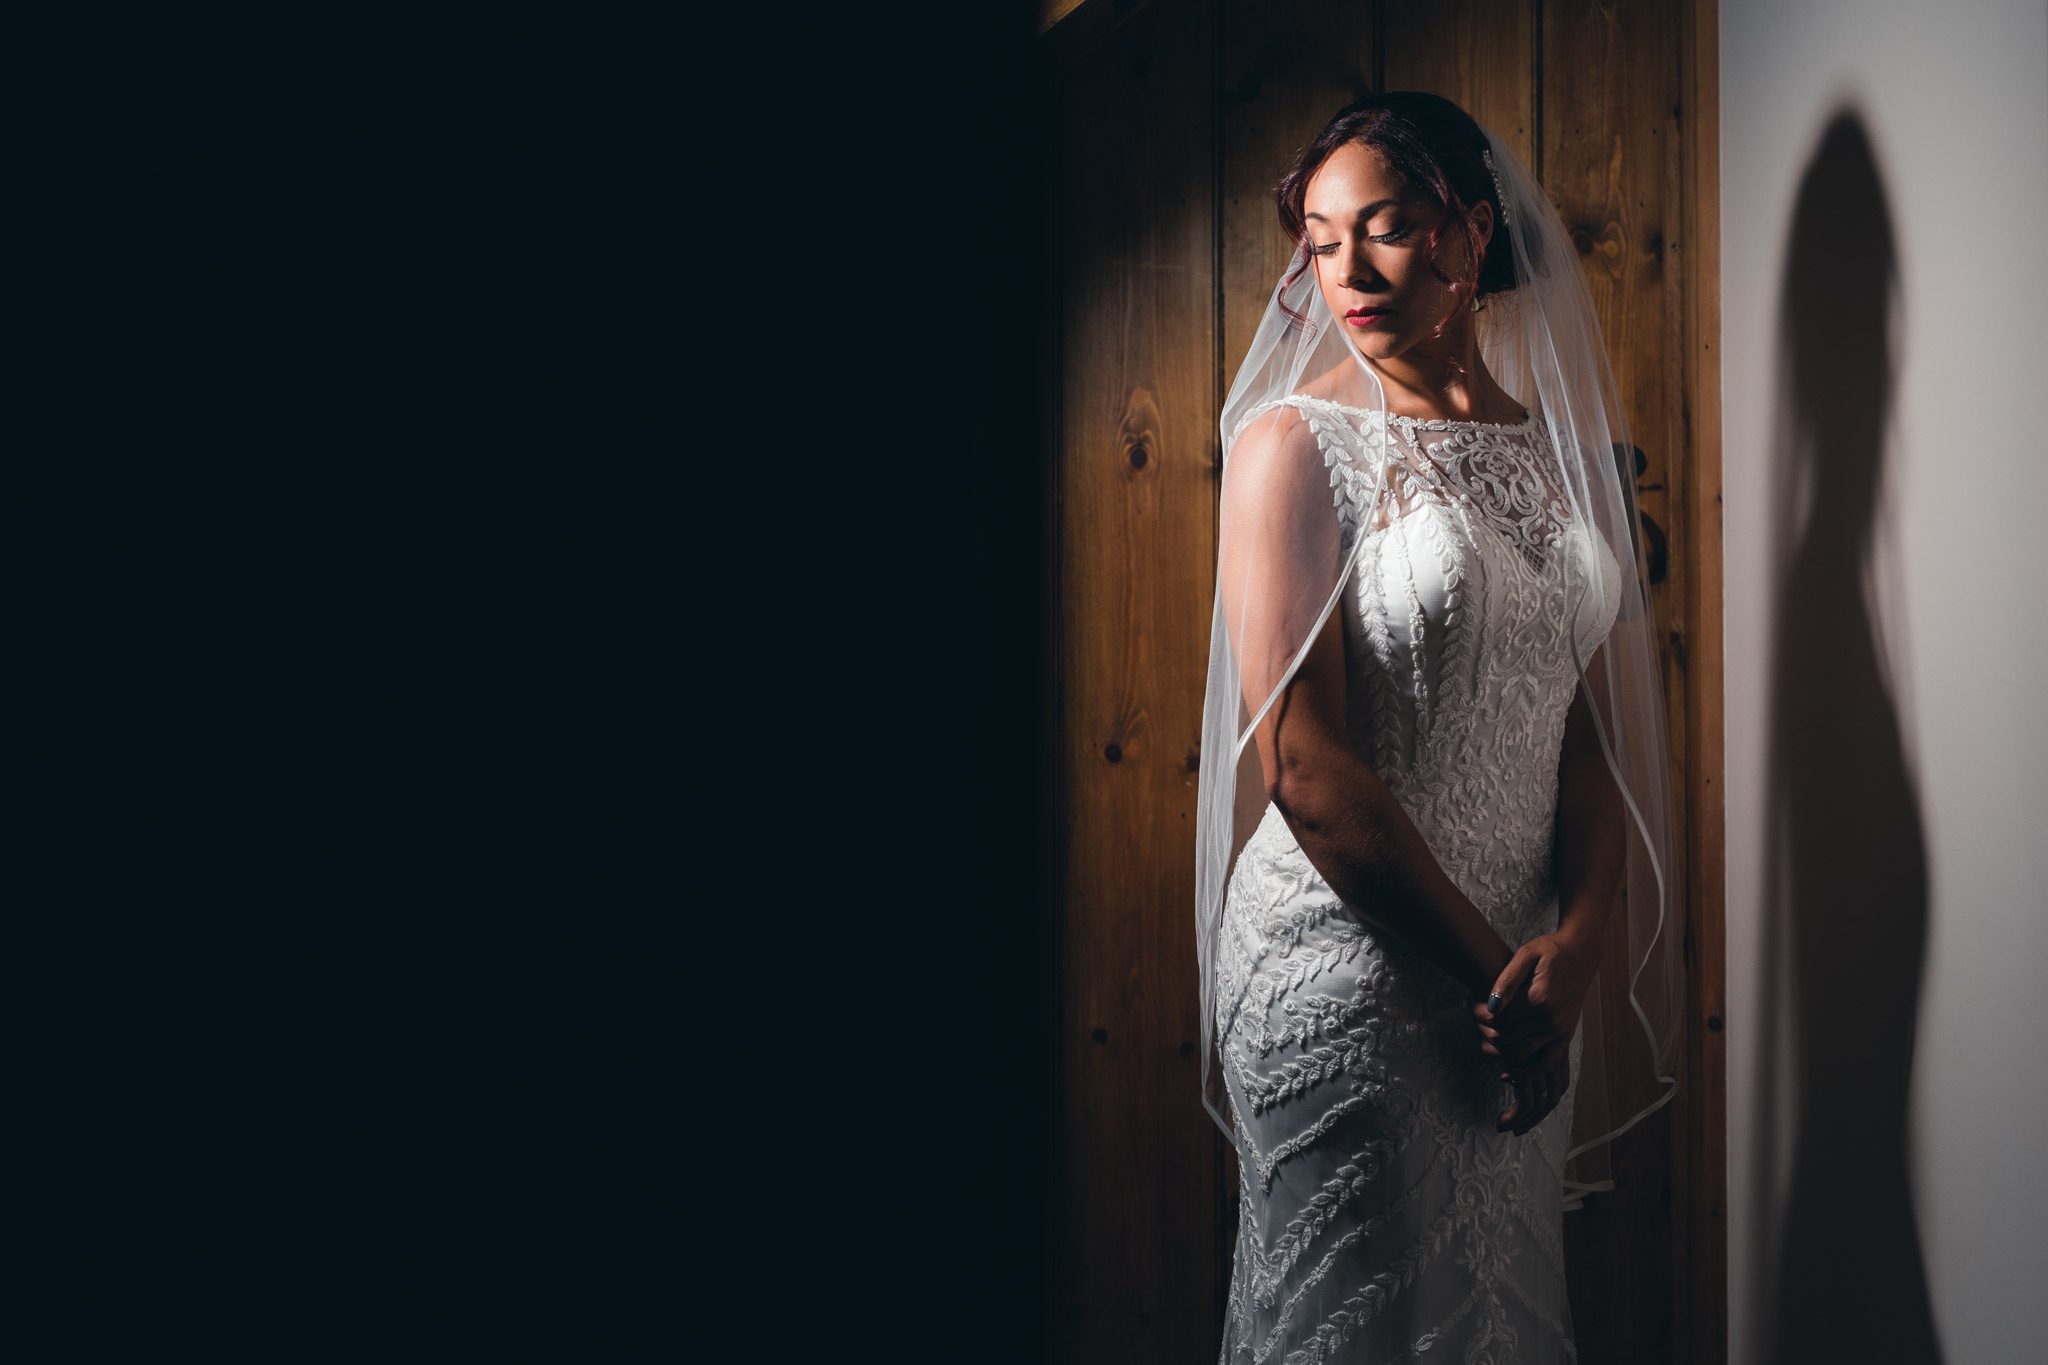 the bride looking calm during her bridal portraits